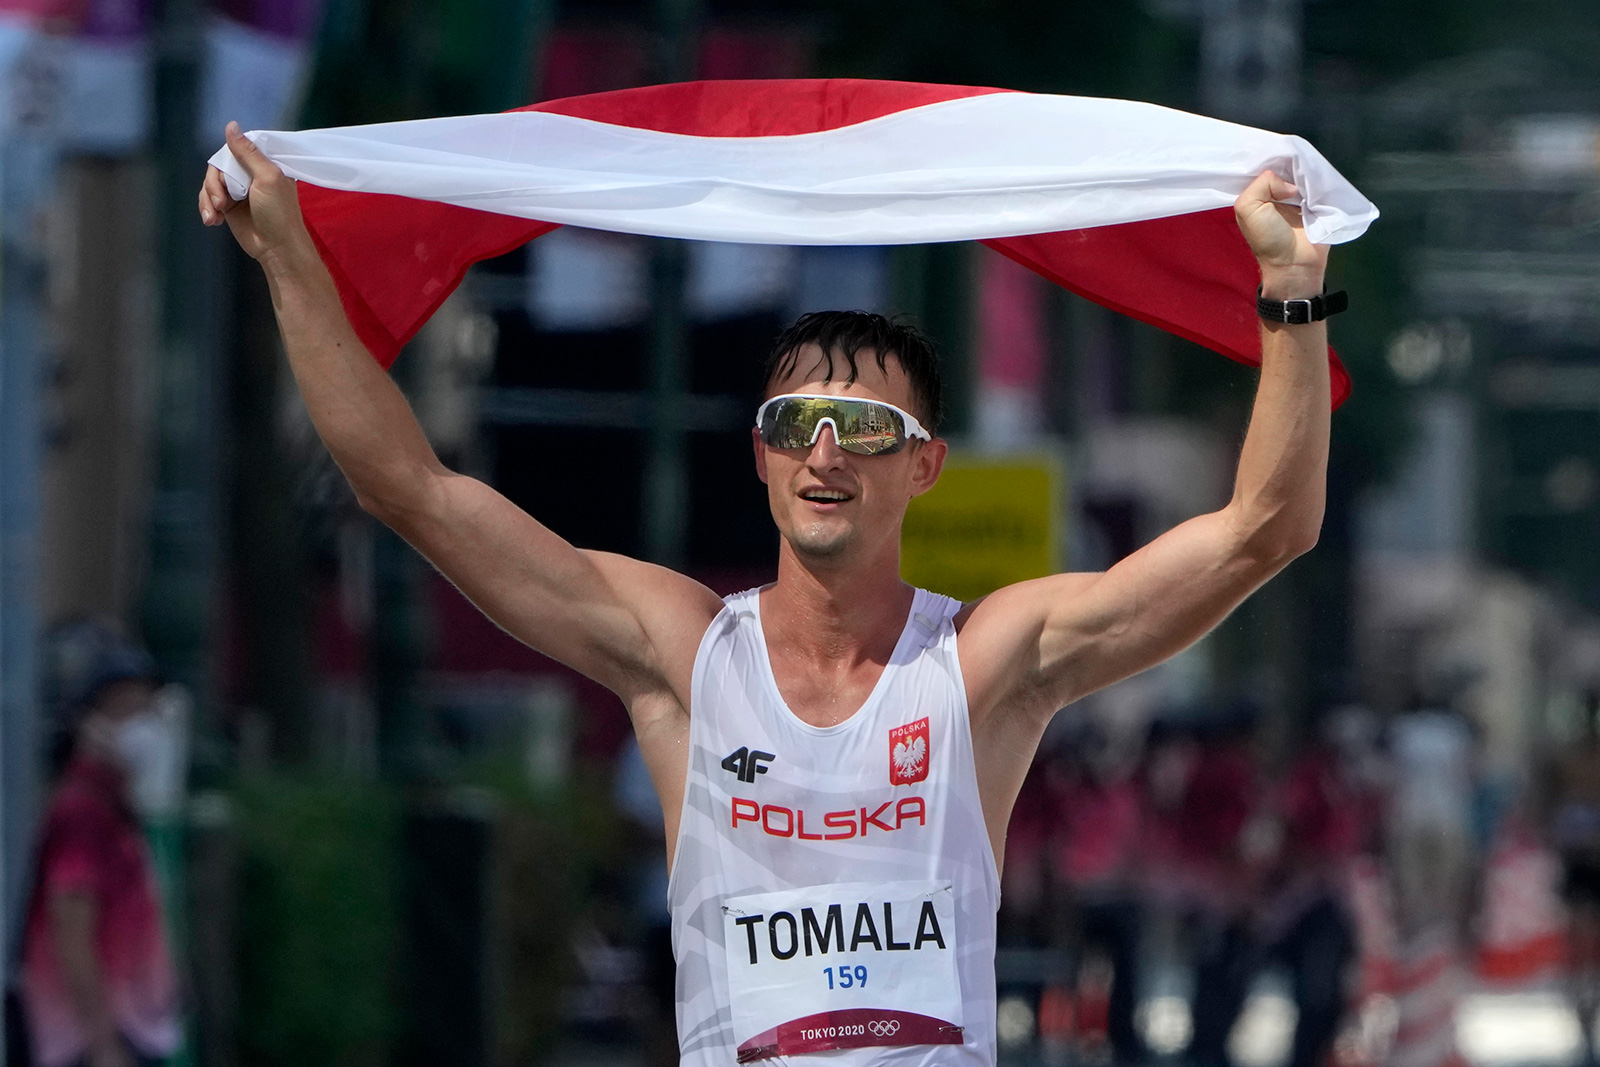 Poland's Dawid Tomala celebrates after winning gold in the 50 kilometers race walk on Friday.